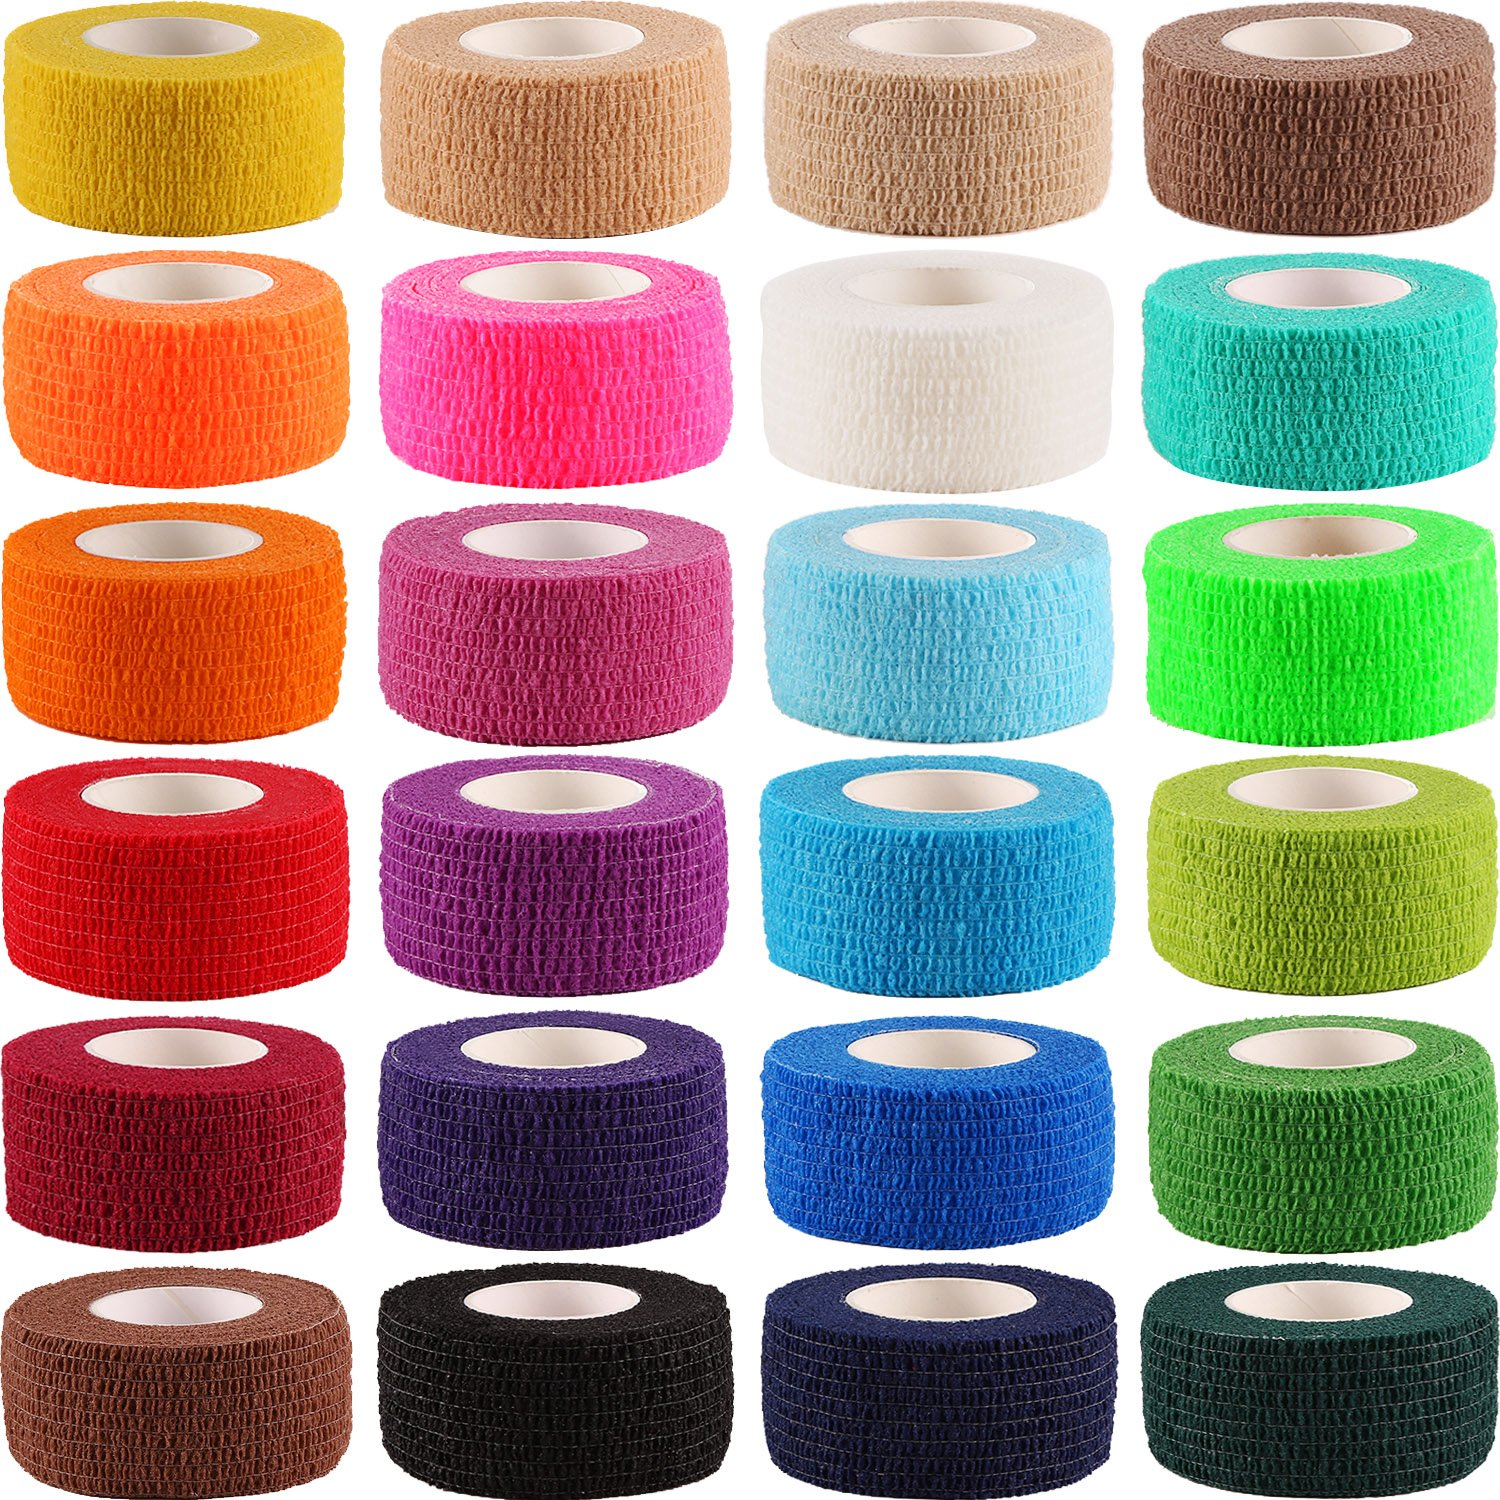 Frienda 24 Pieces Adhesive Wrap Bandage Rolls Self-Adherent Tape for Sports, Wrist and Ankle, 5 Yards (24 Colors, 1 inch) by Frienda